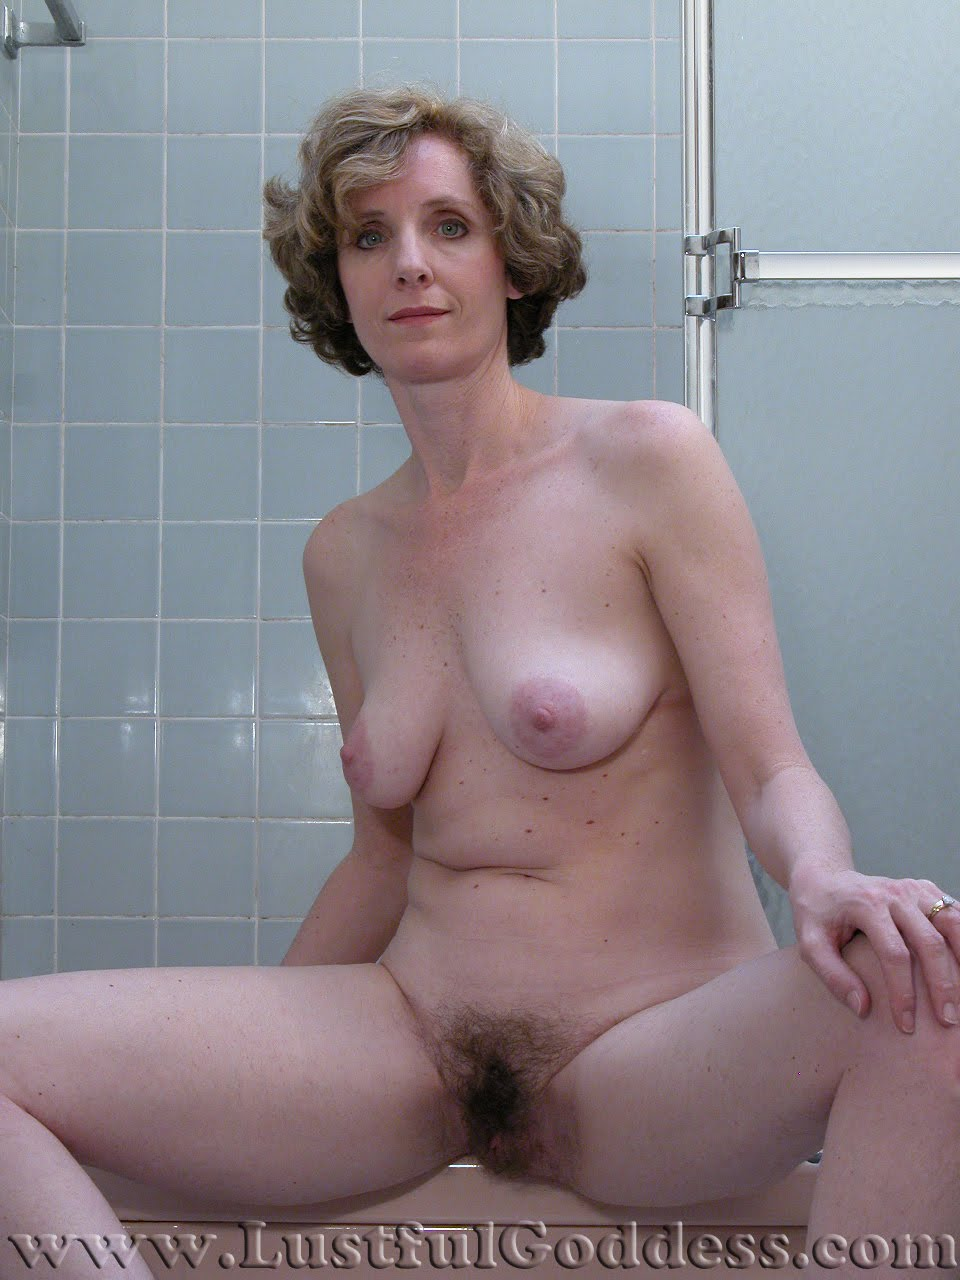 free hairy mature pic woman - random photo gallery